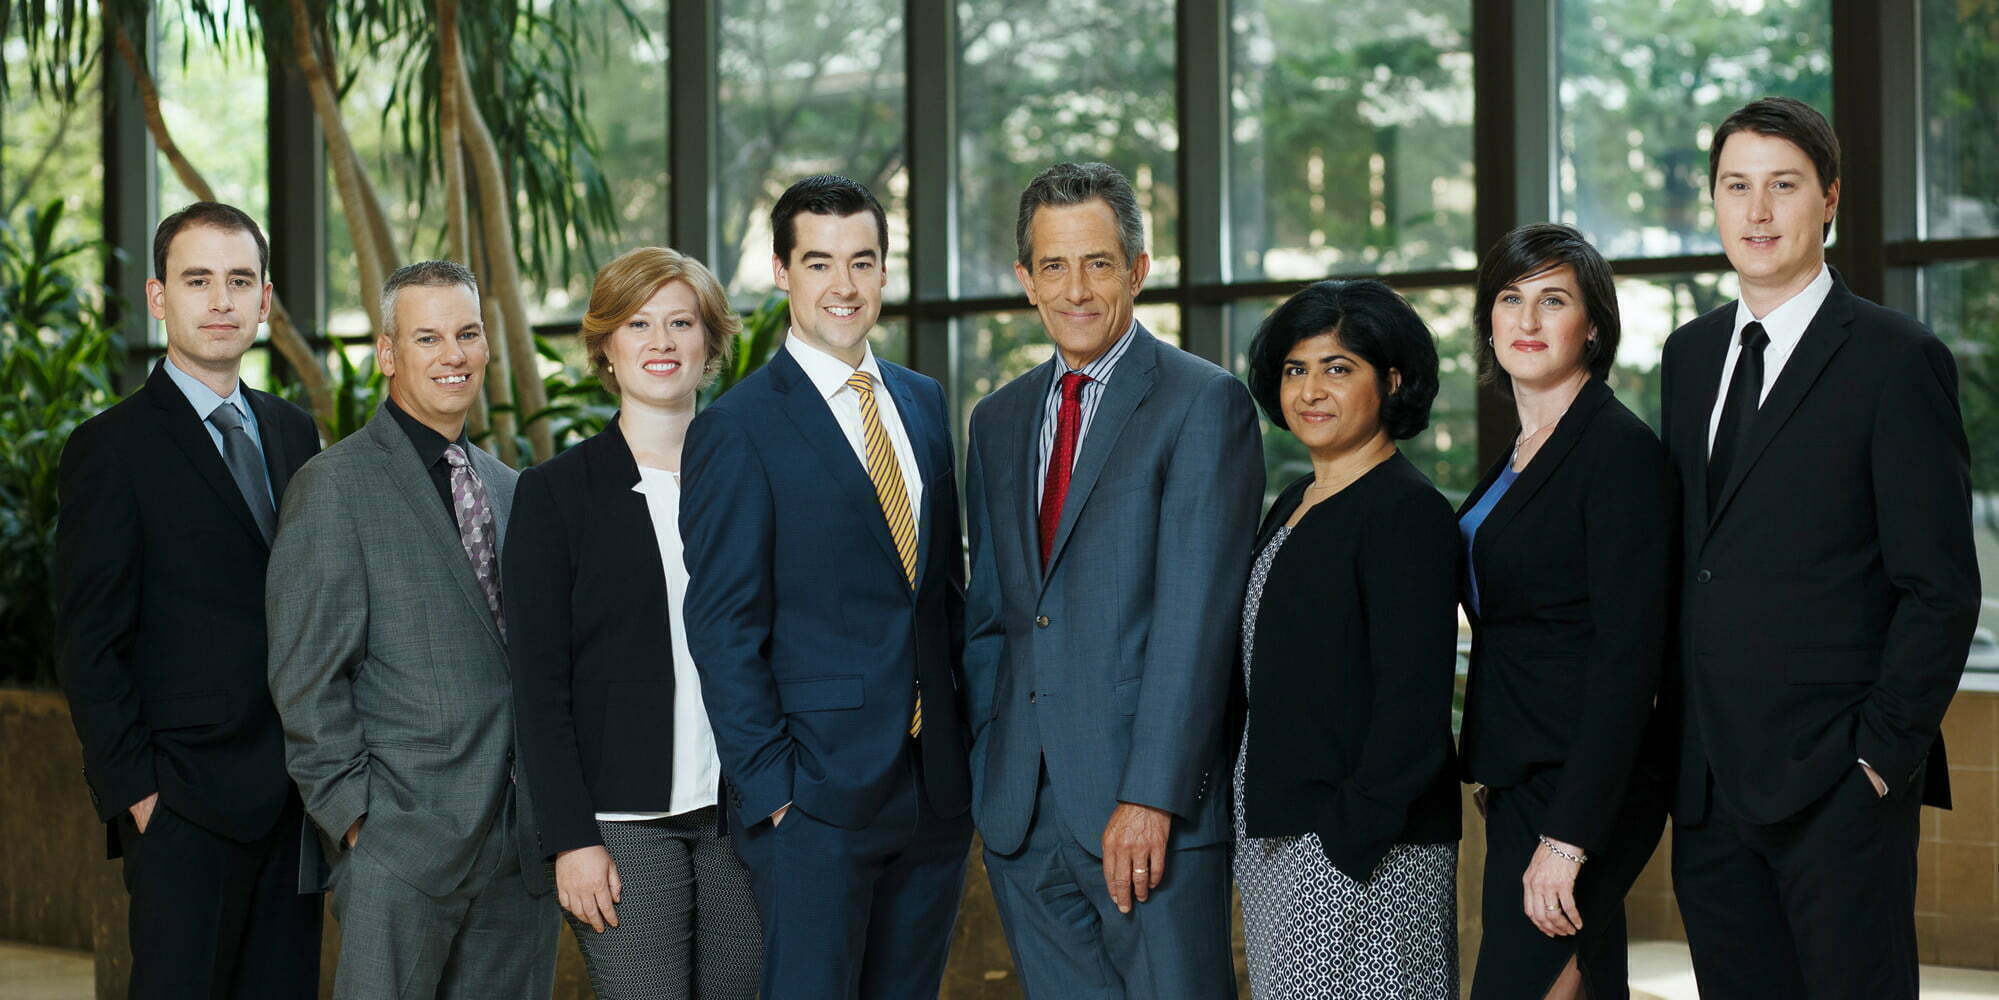 Montreal Corporate Group Portrait